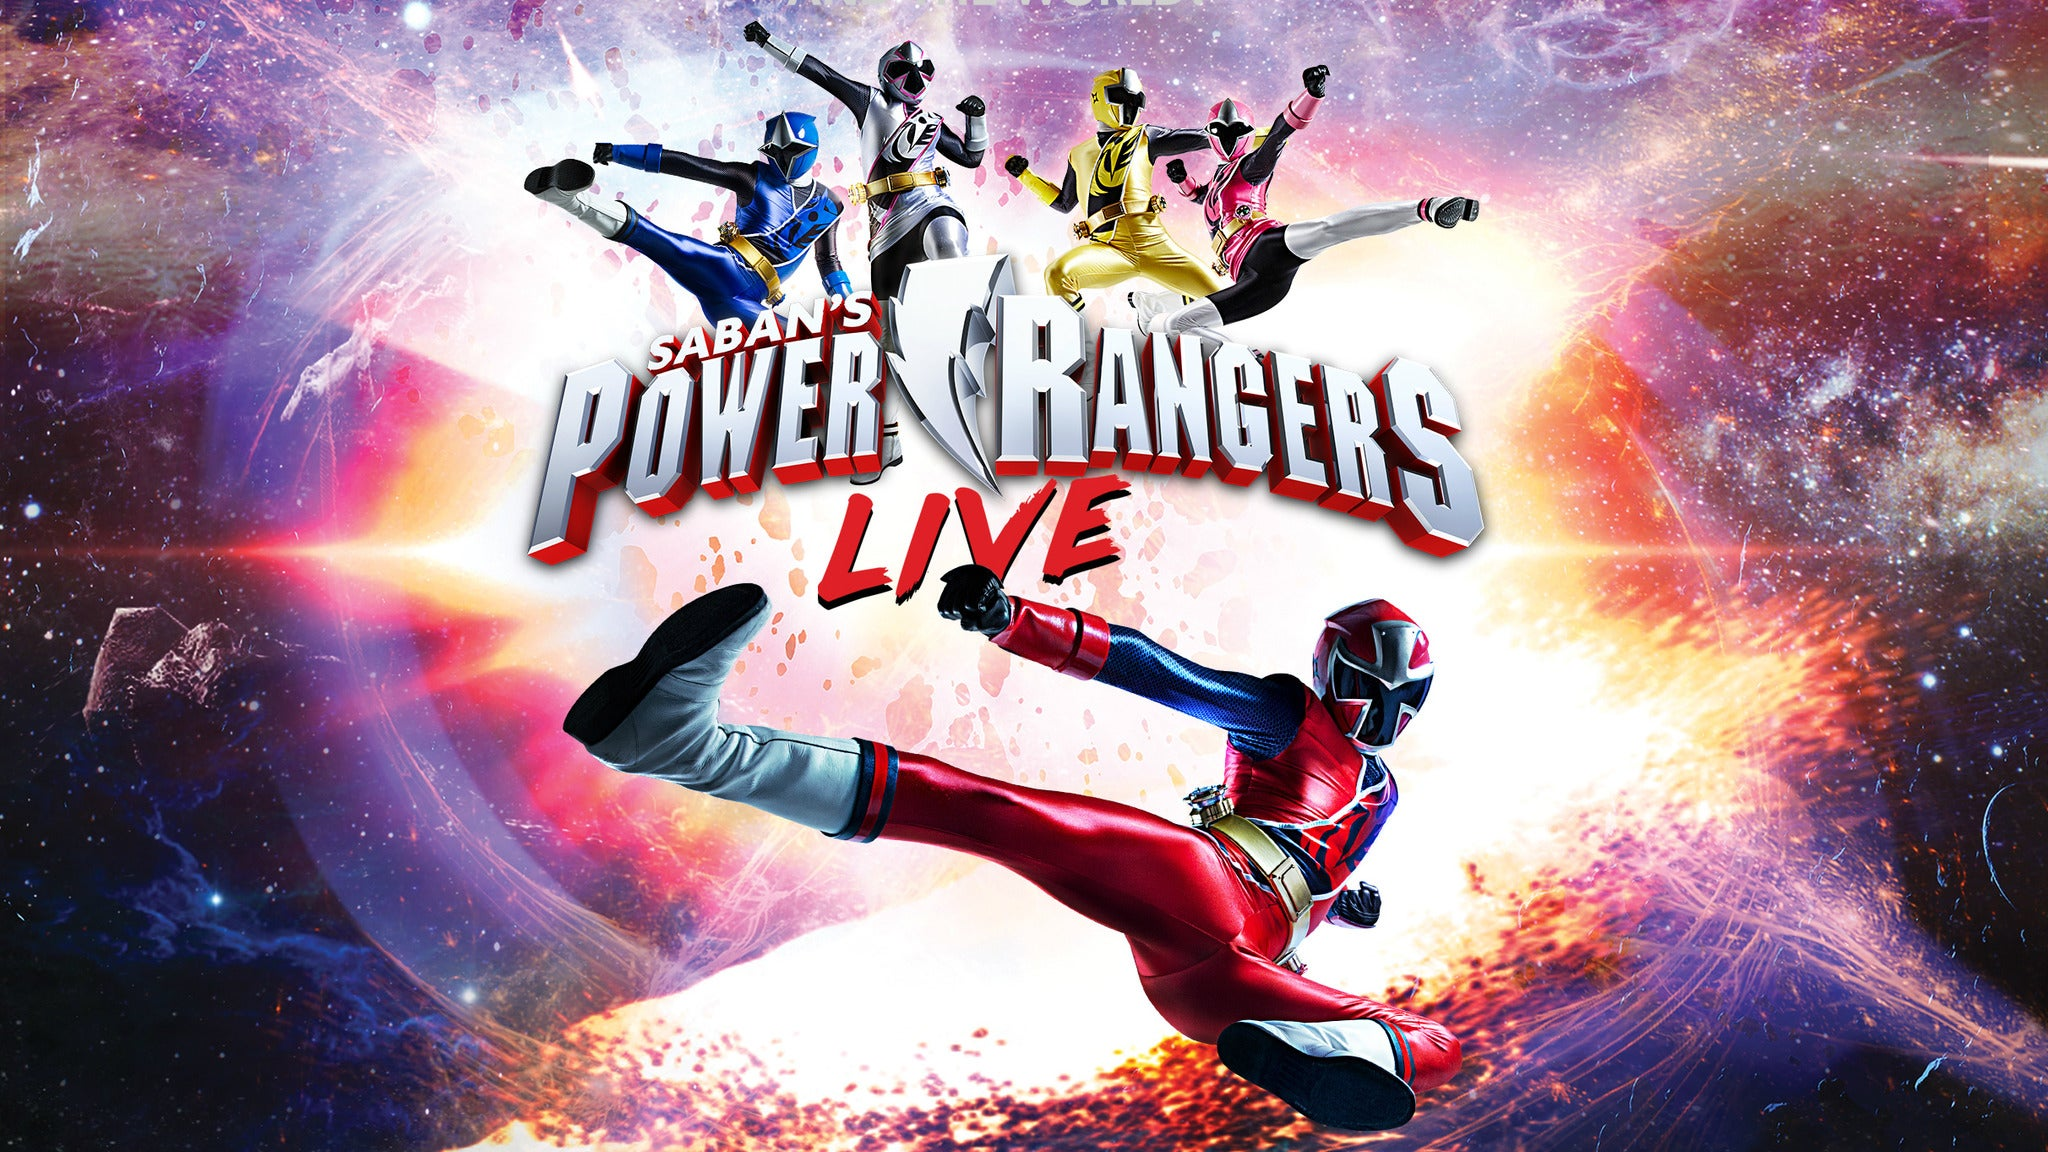 Power Rangers Live! - Mashantucket, CT 06355